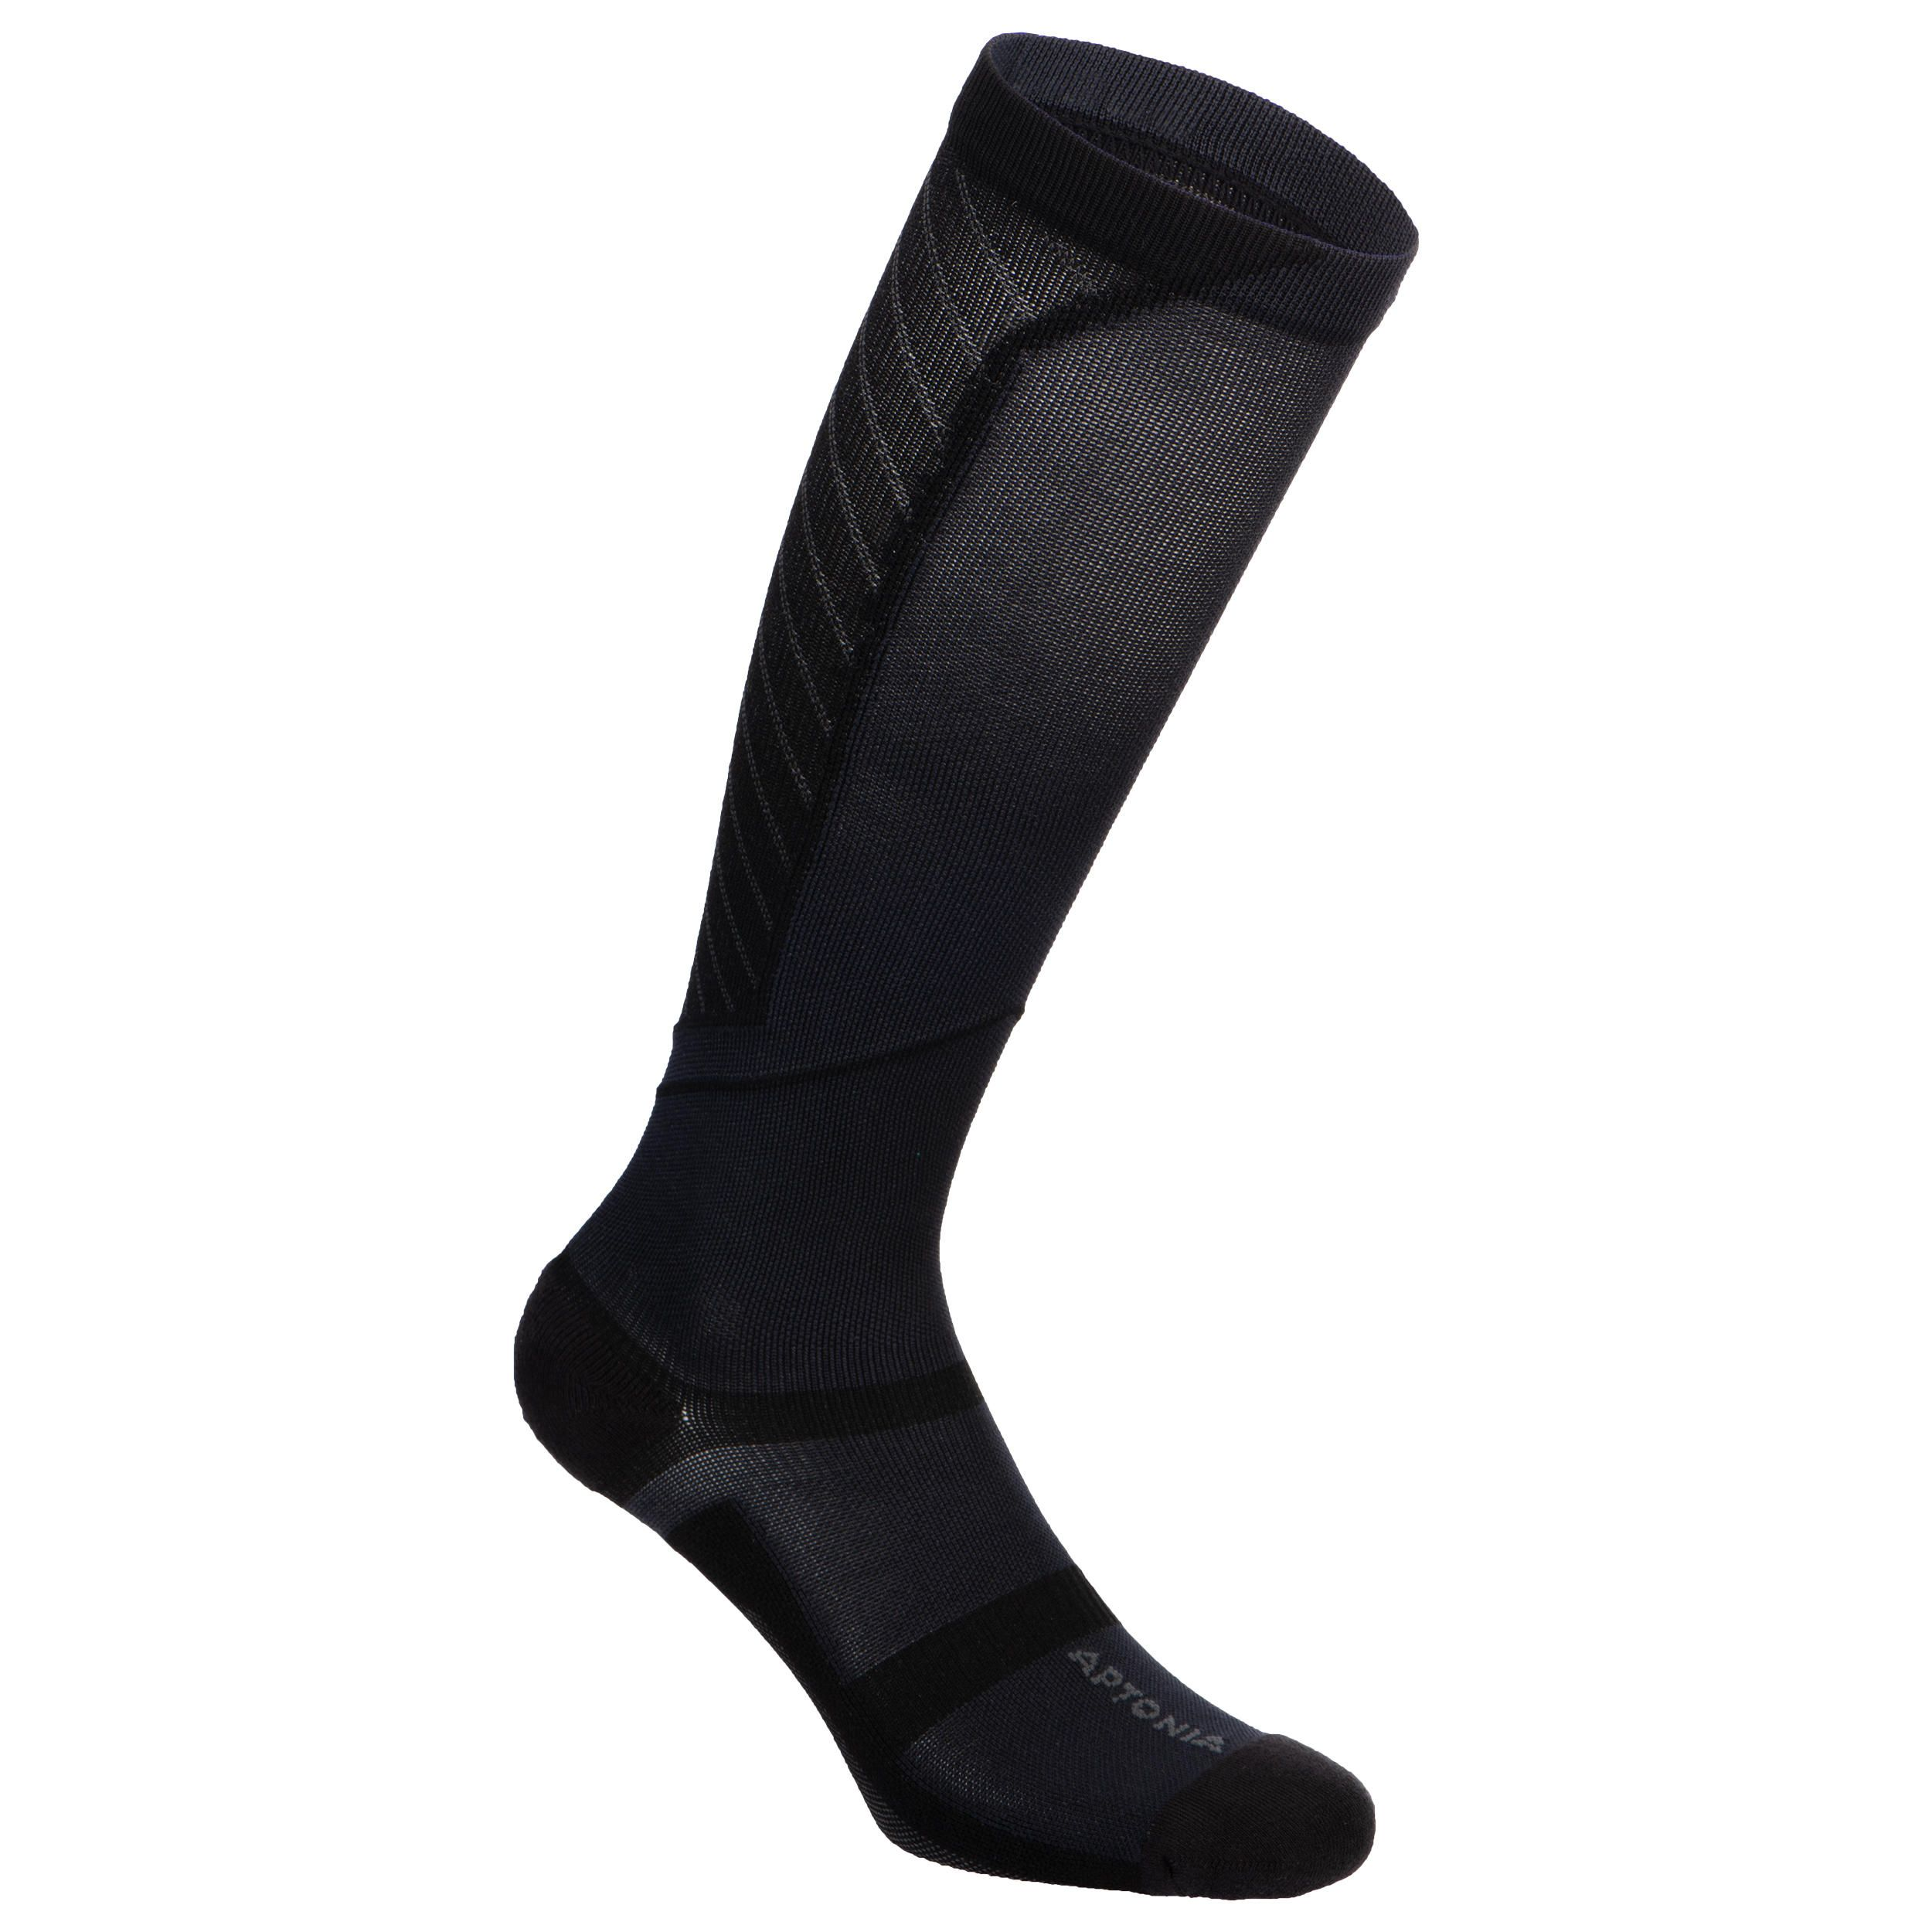 [Image: recovery-compression-sock-black.jpg]